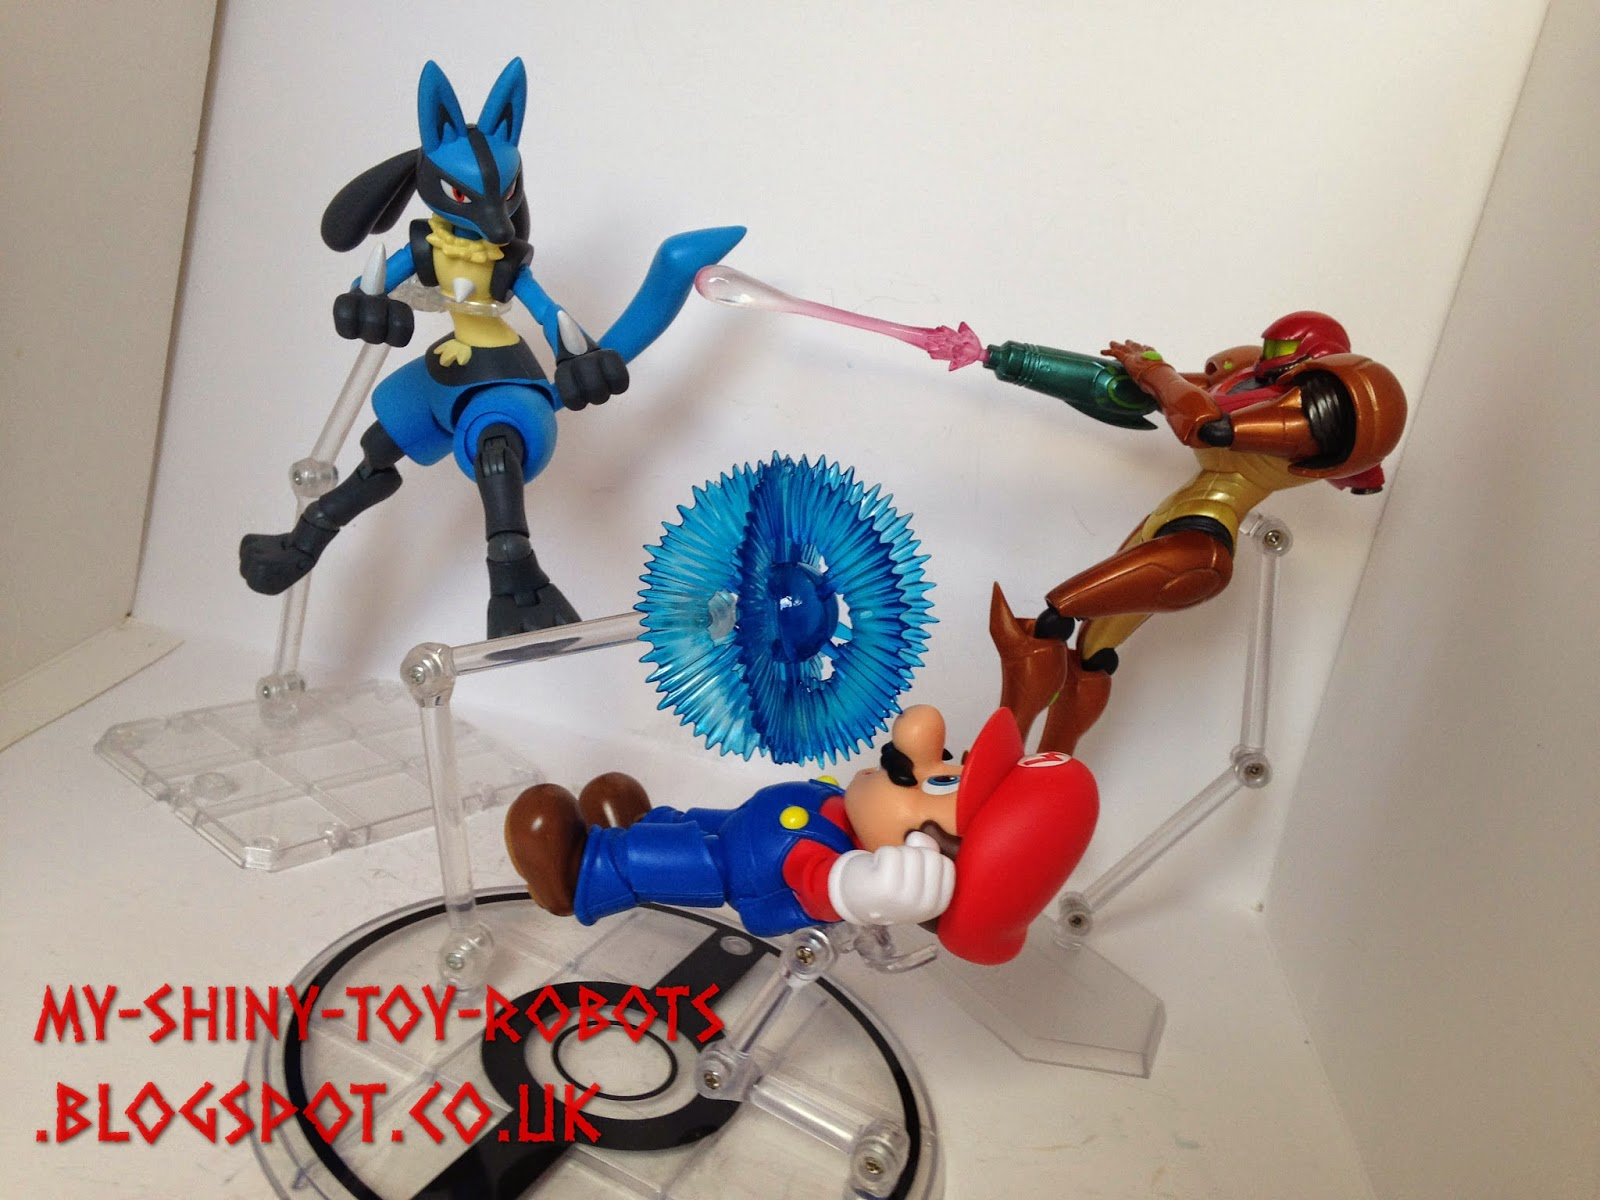 Lucario joins the brawl!